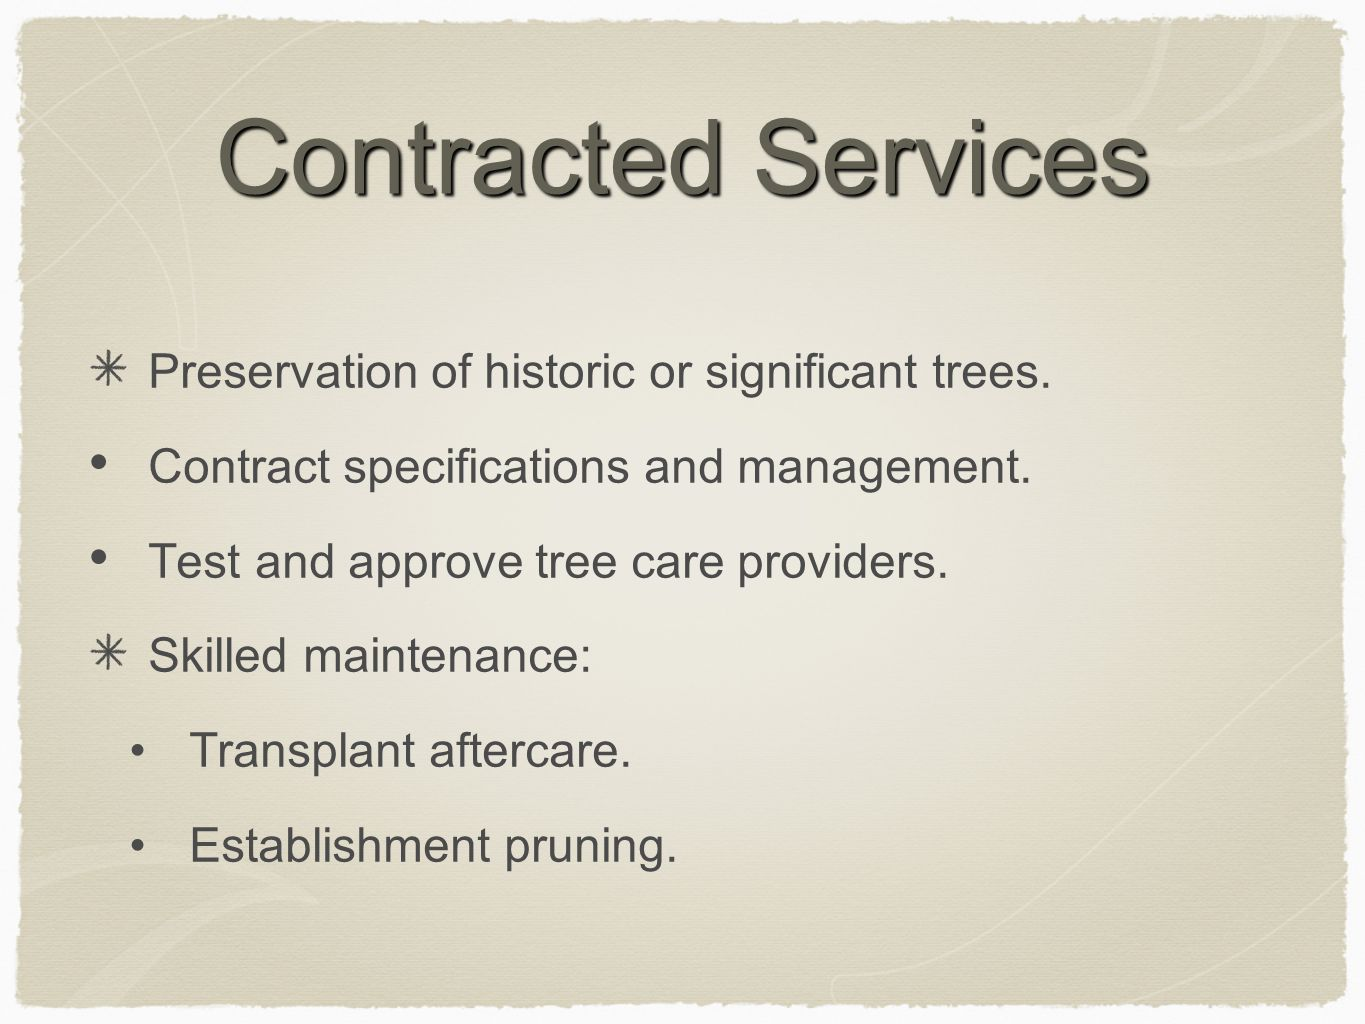 Contracted Services Preservation of historic or significant trees. Contract specifications and management. Test and approve tree care providers. Skill